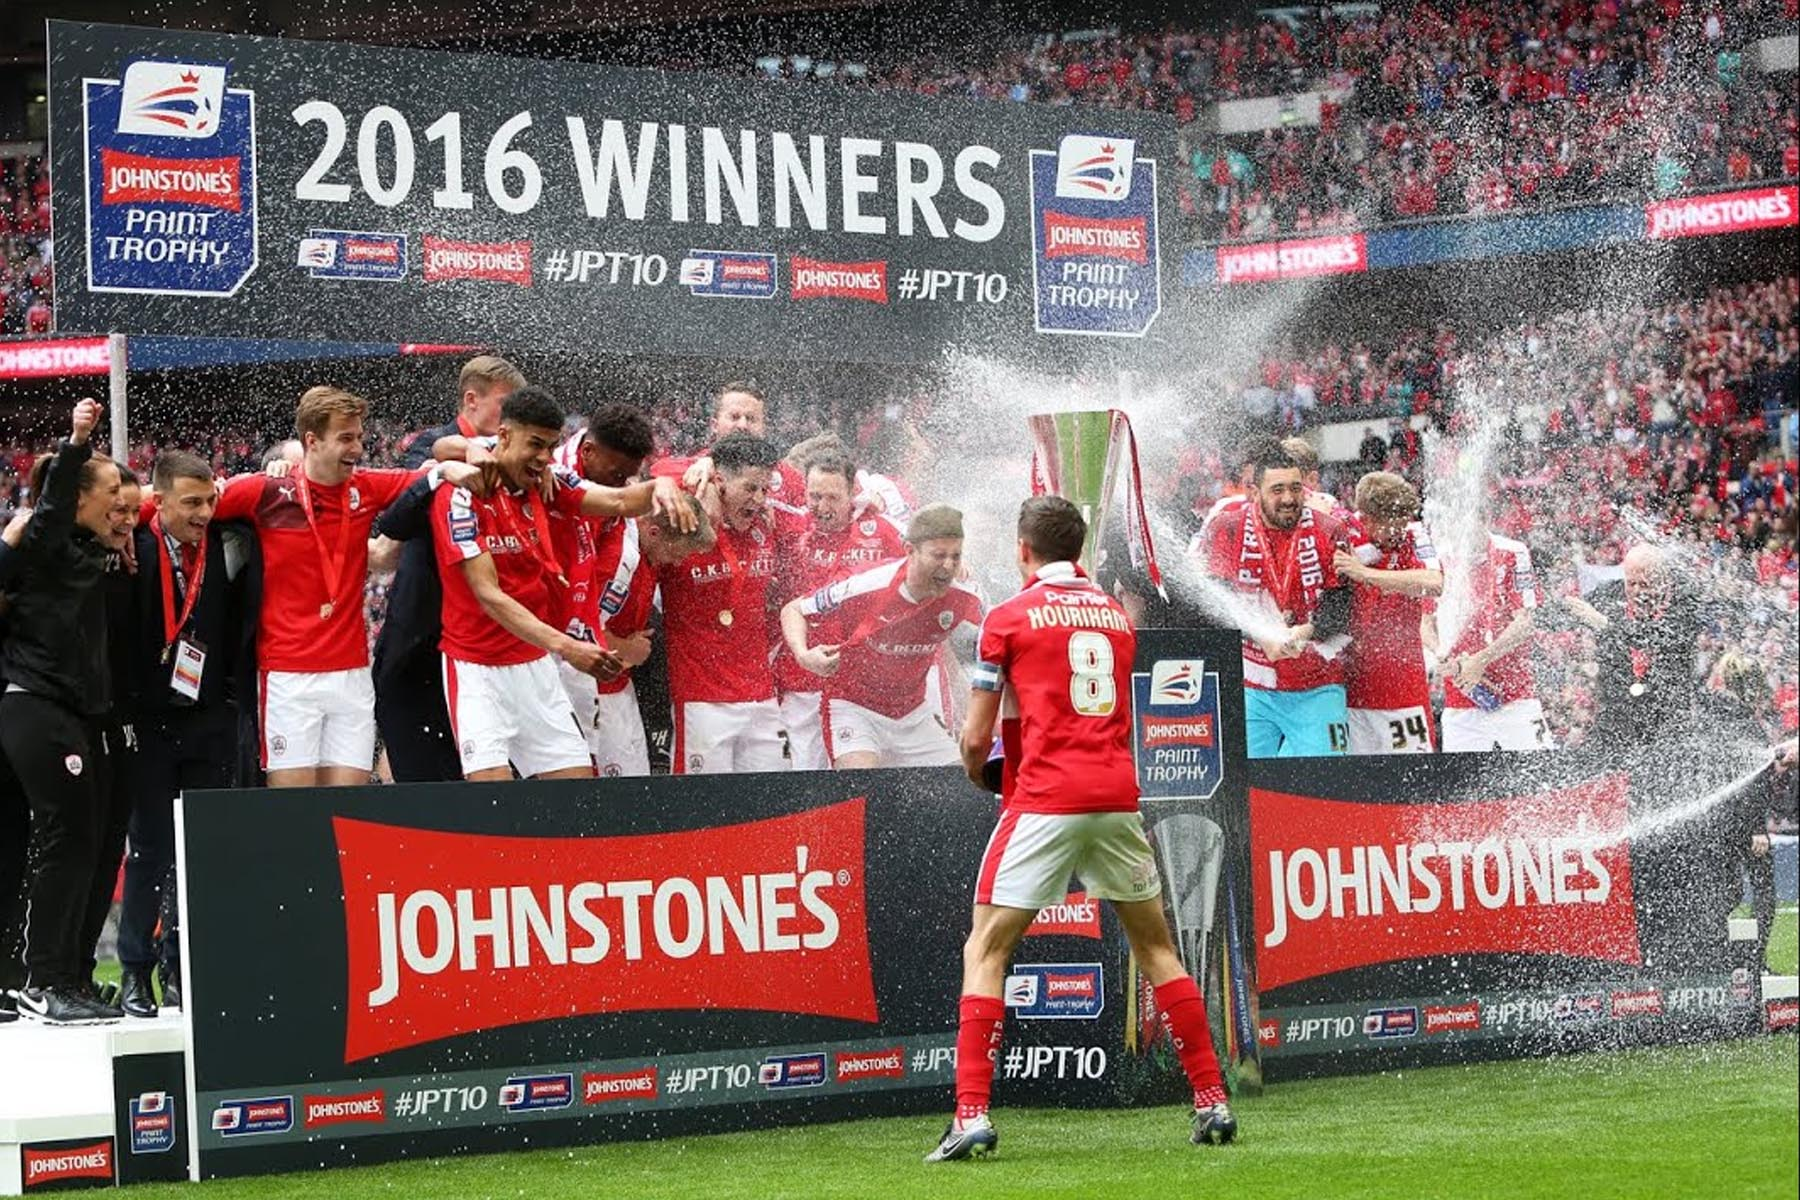 Johnstone's Paint Trophy Final 2016 Enhanced Winners Podium Stage Wembley